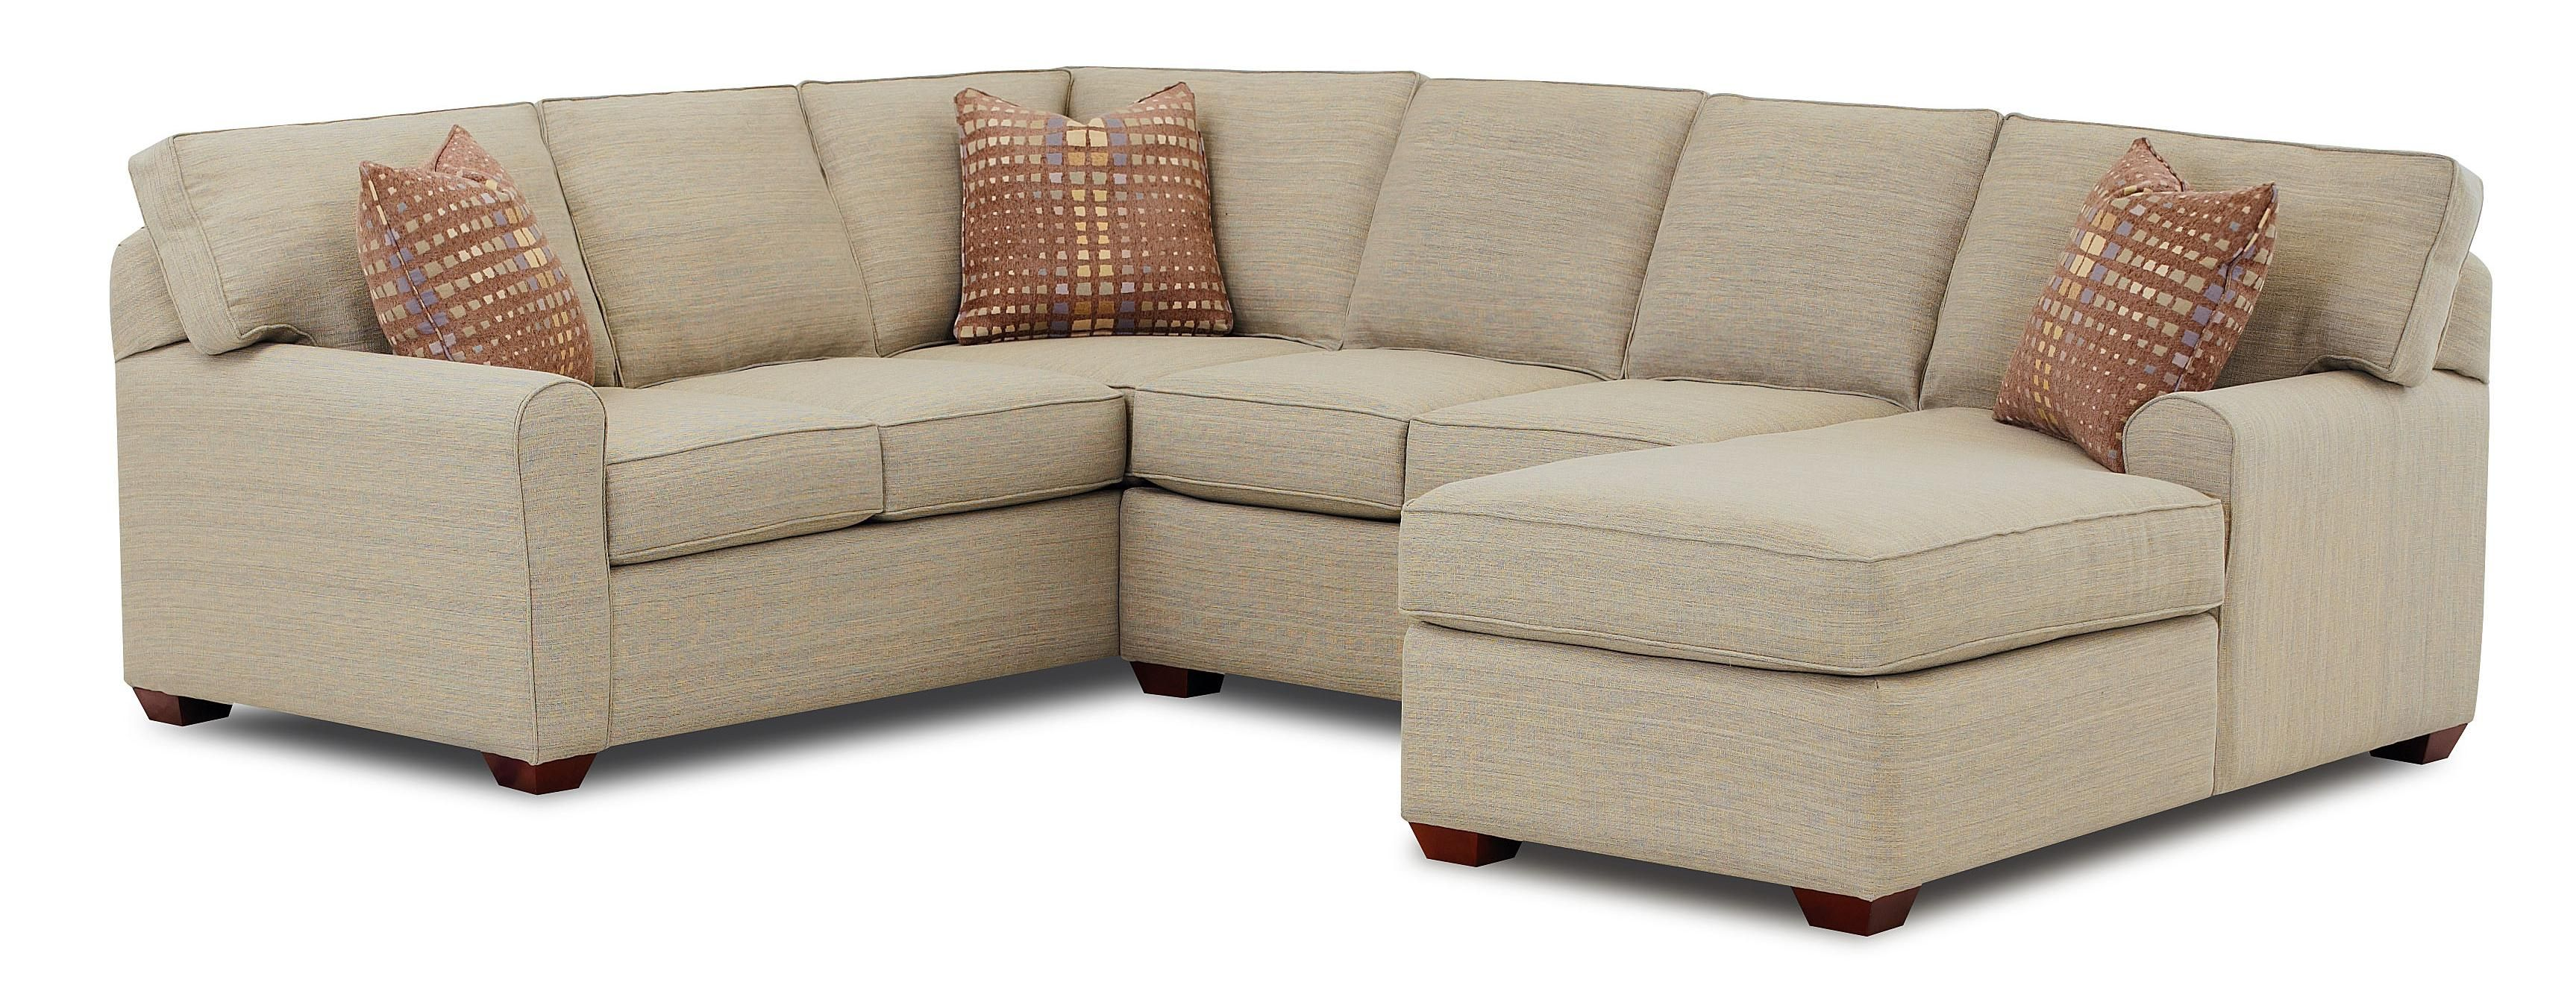 Hybrid Sectional Sofa With Right-Facing Chaise Lounge